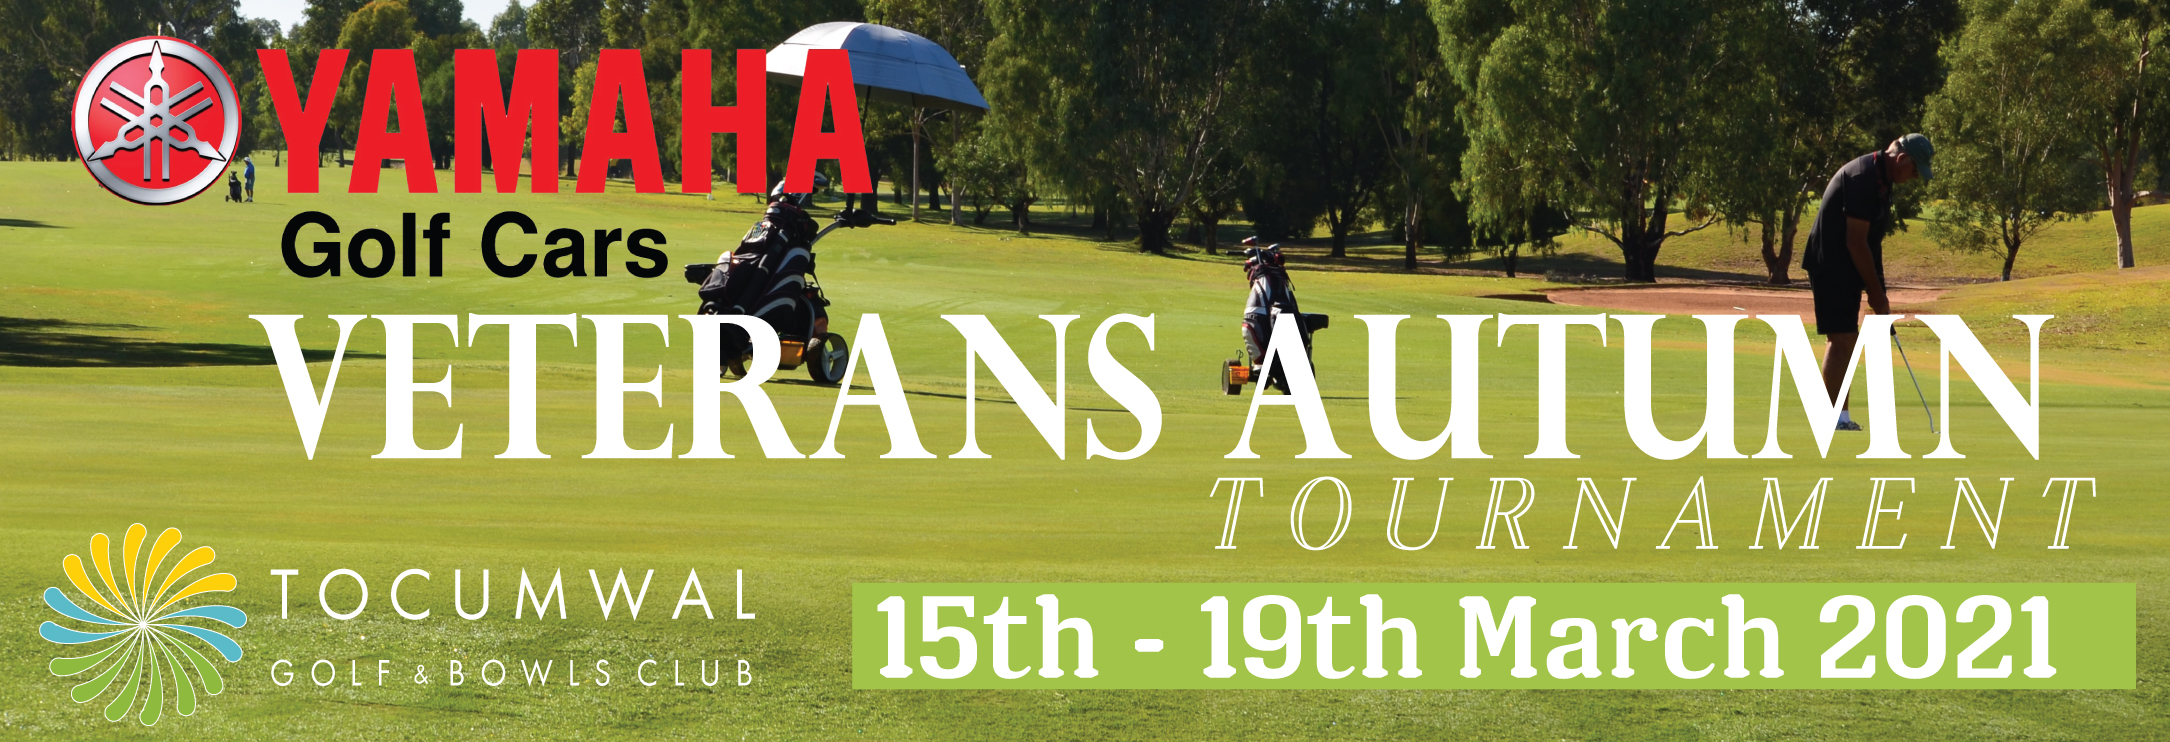 2021-Yamaha-Veterans-Autumn-Tournament-banner